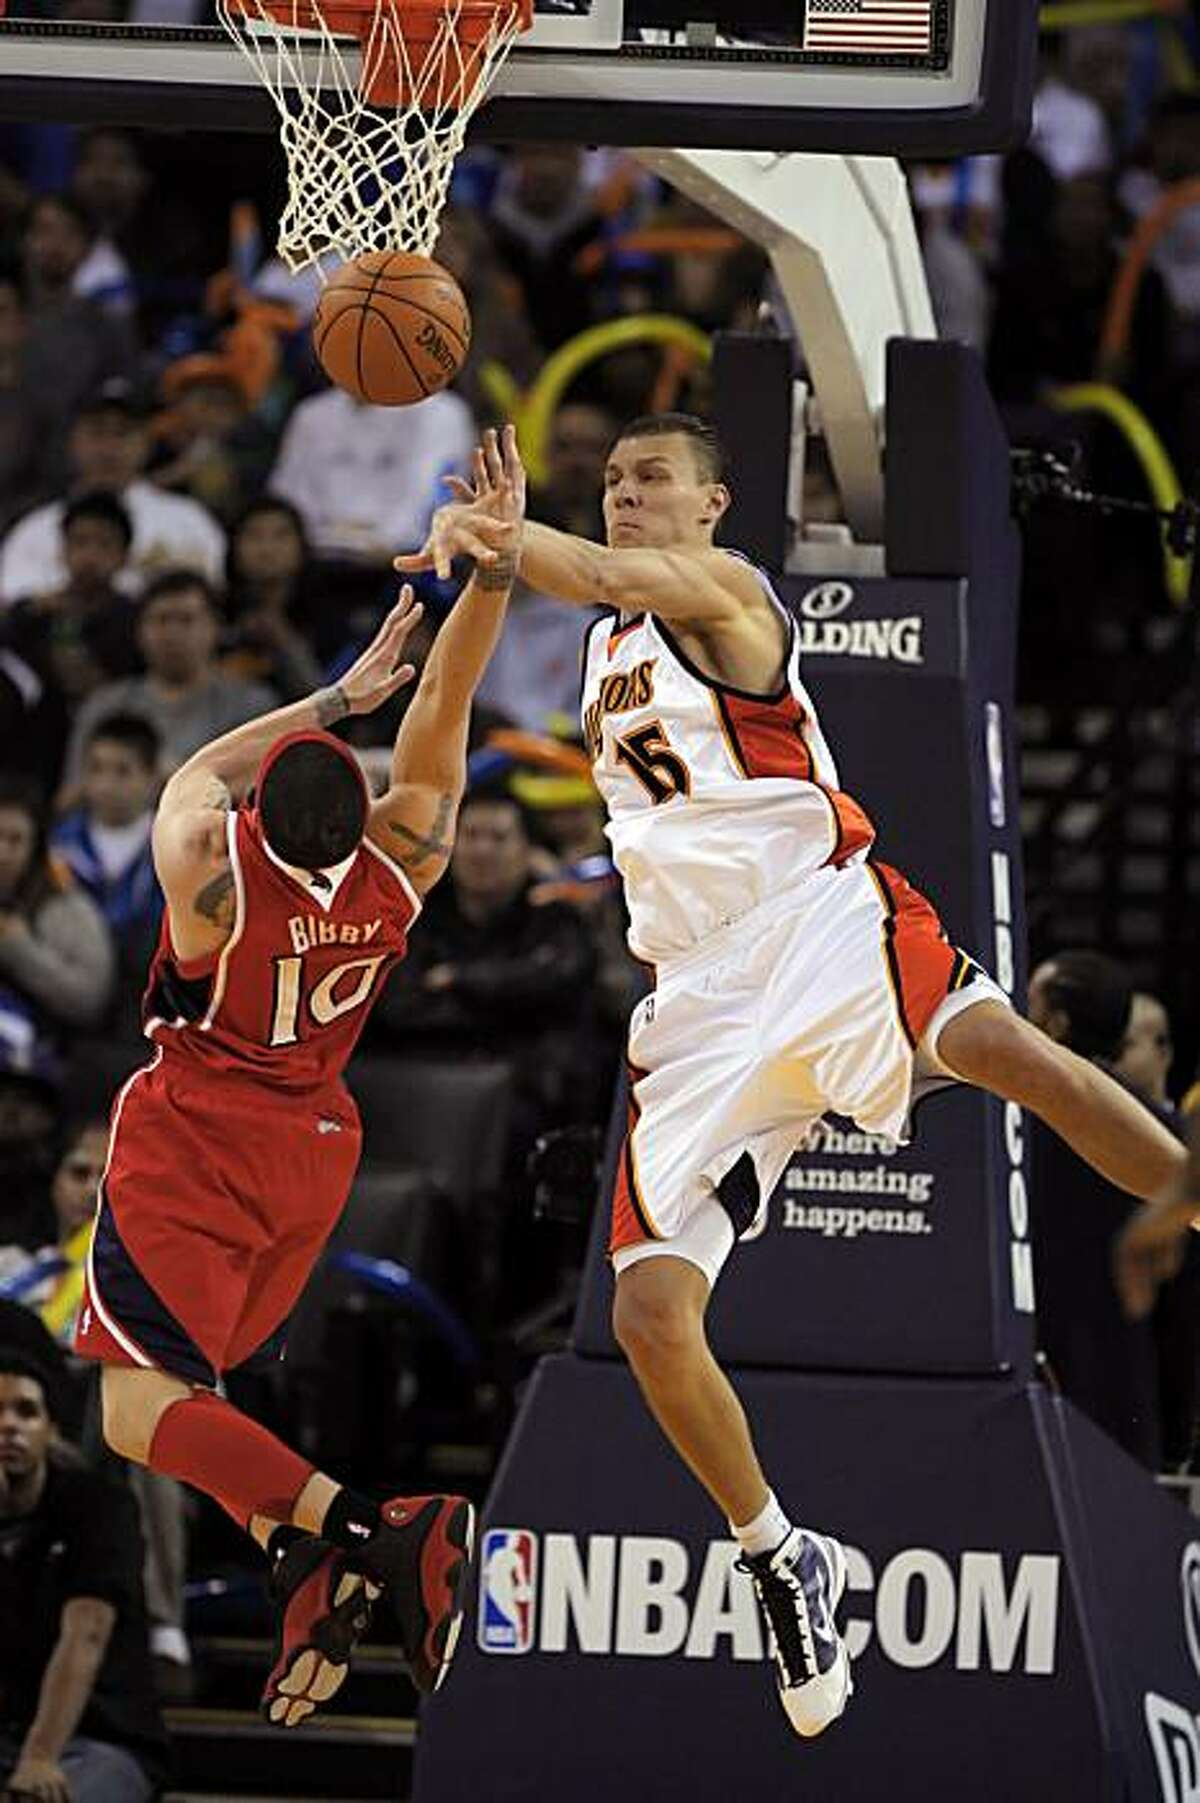 Andris Biedrins blocks a shot by Atlanta's Michael Bibby in the second half of the Warriors' game against the Atlanta Hawks at Oracle Arena in Oakland on Sunday.